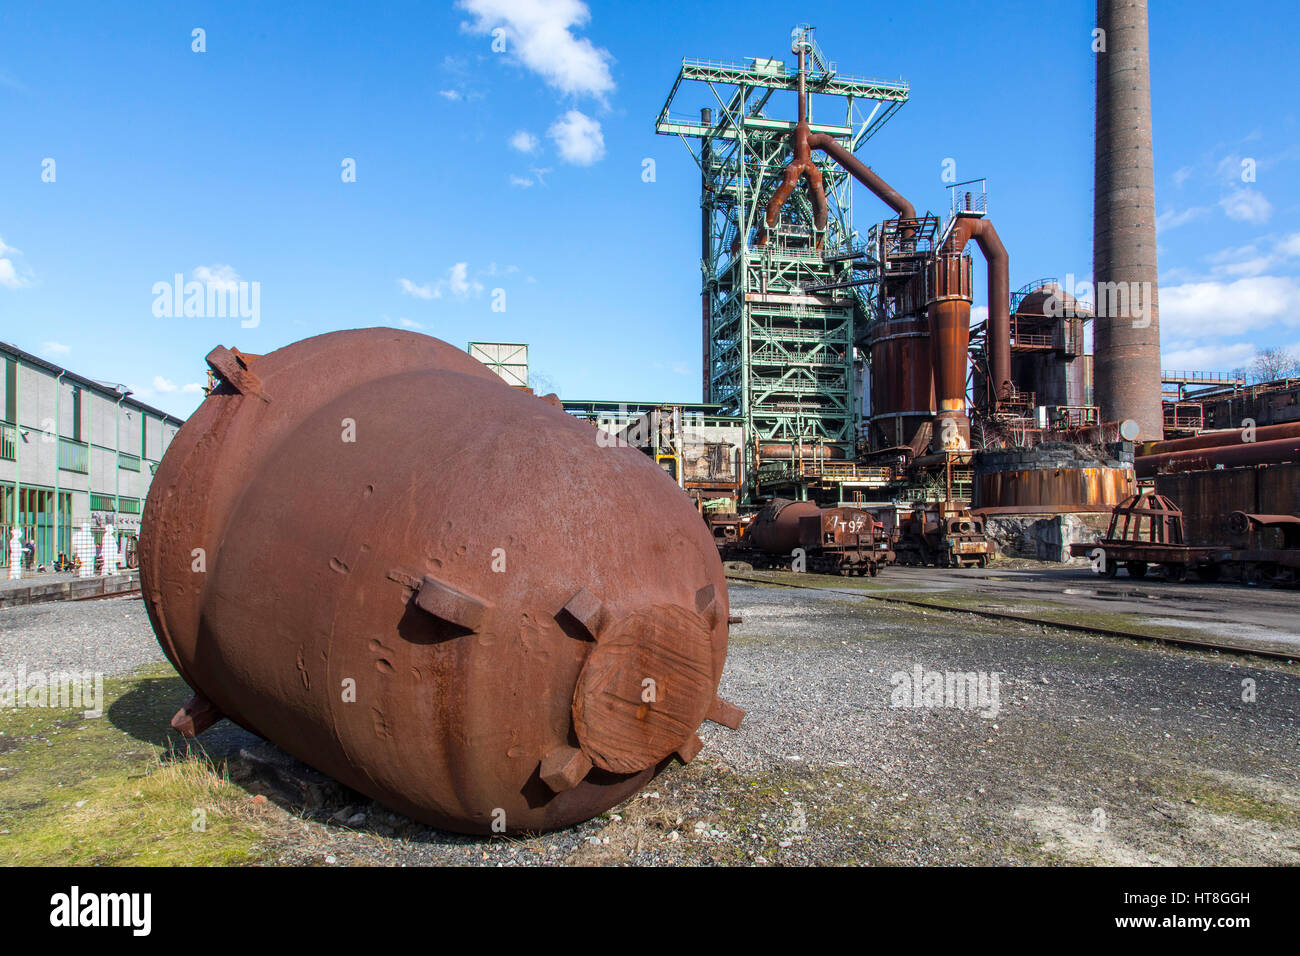 Henrichshütte, former steelworks, industrial museum, blast furnace, Hattingen, Germany, Stock Photo